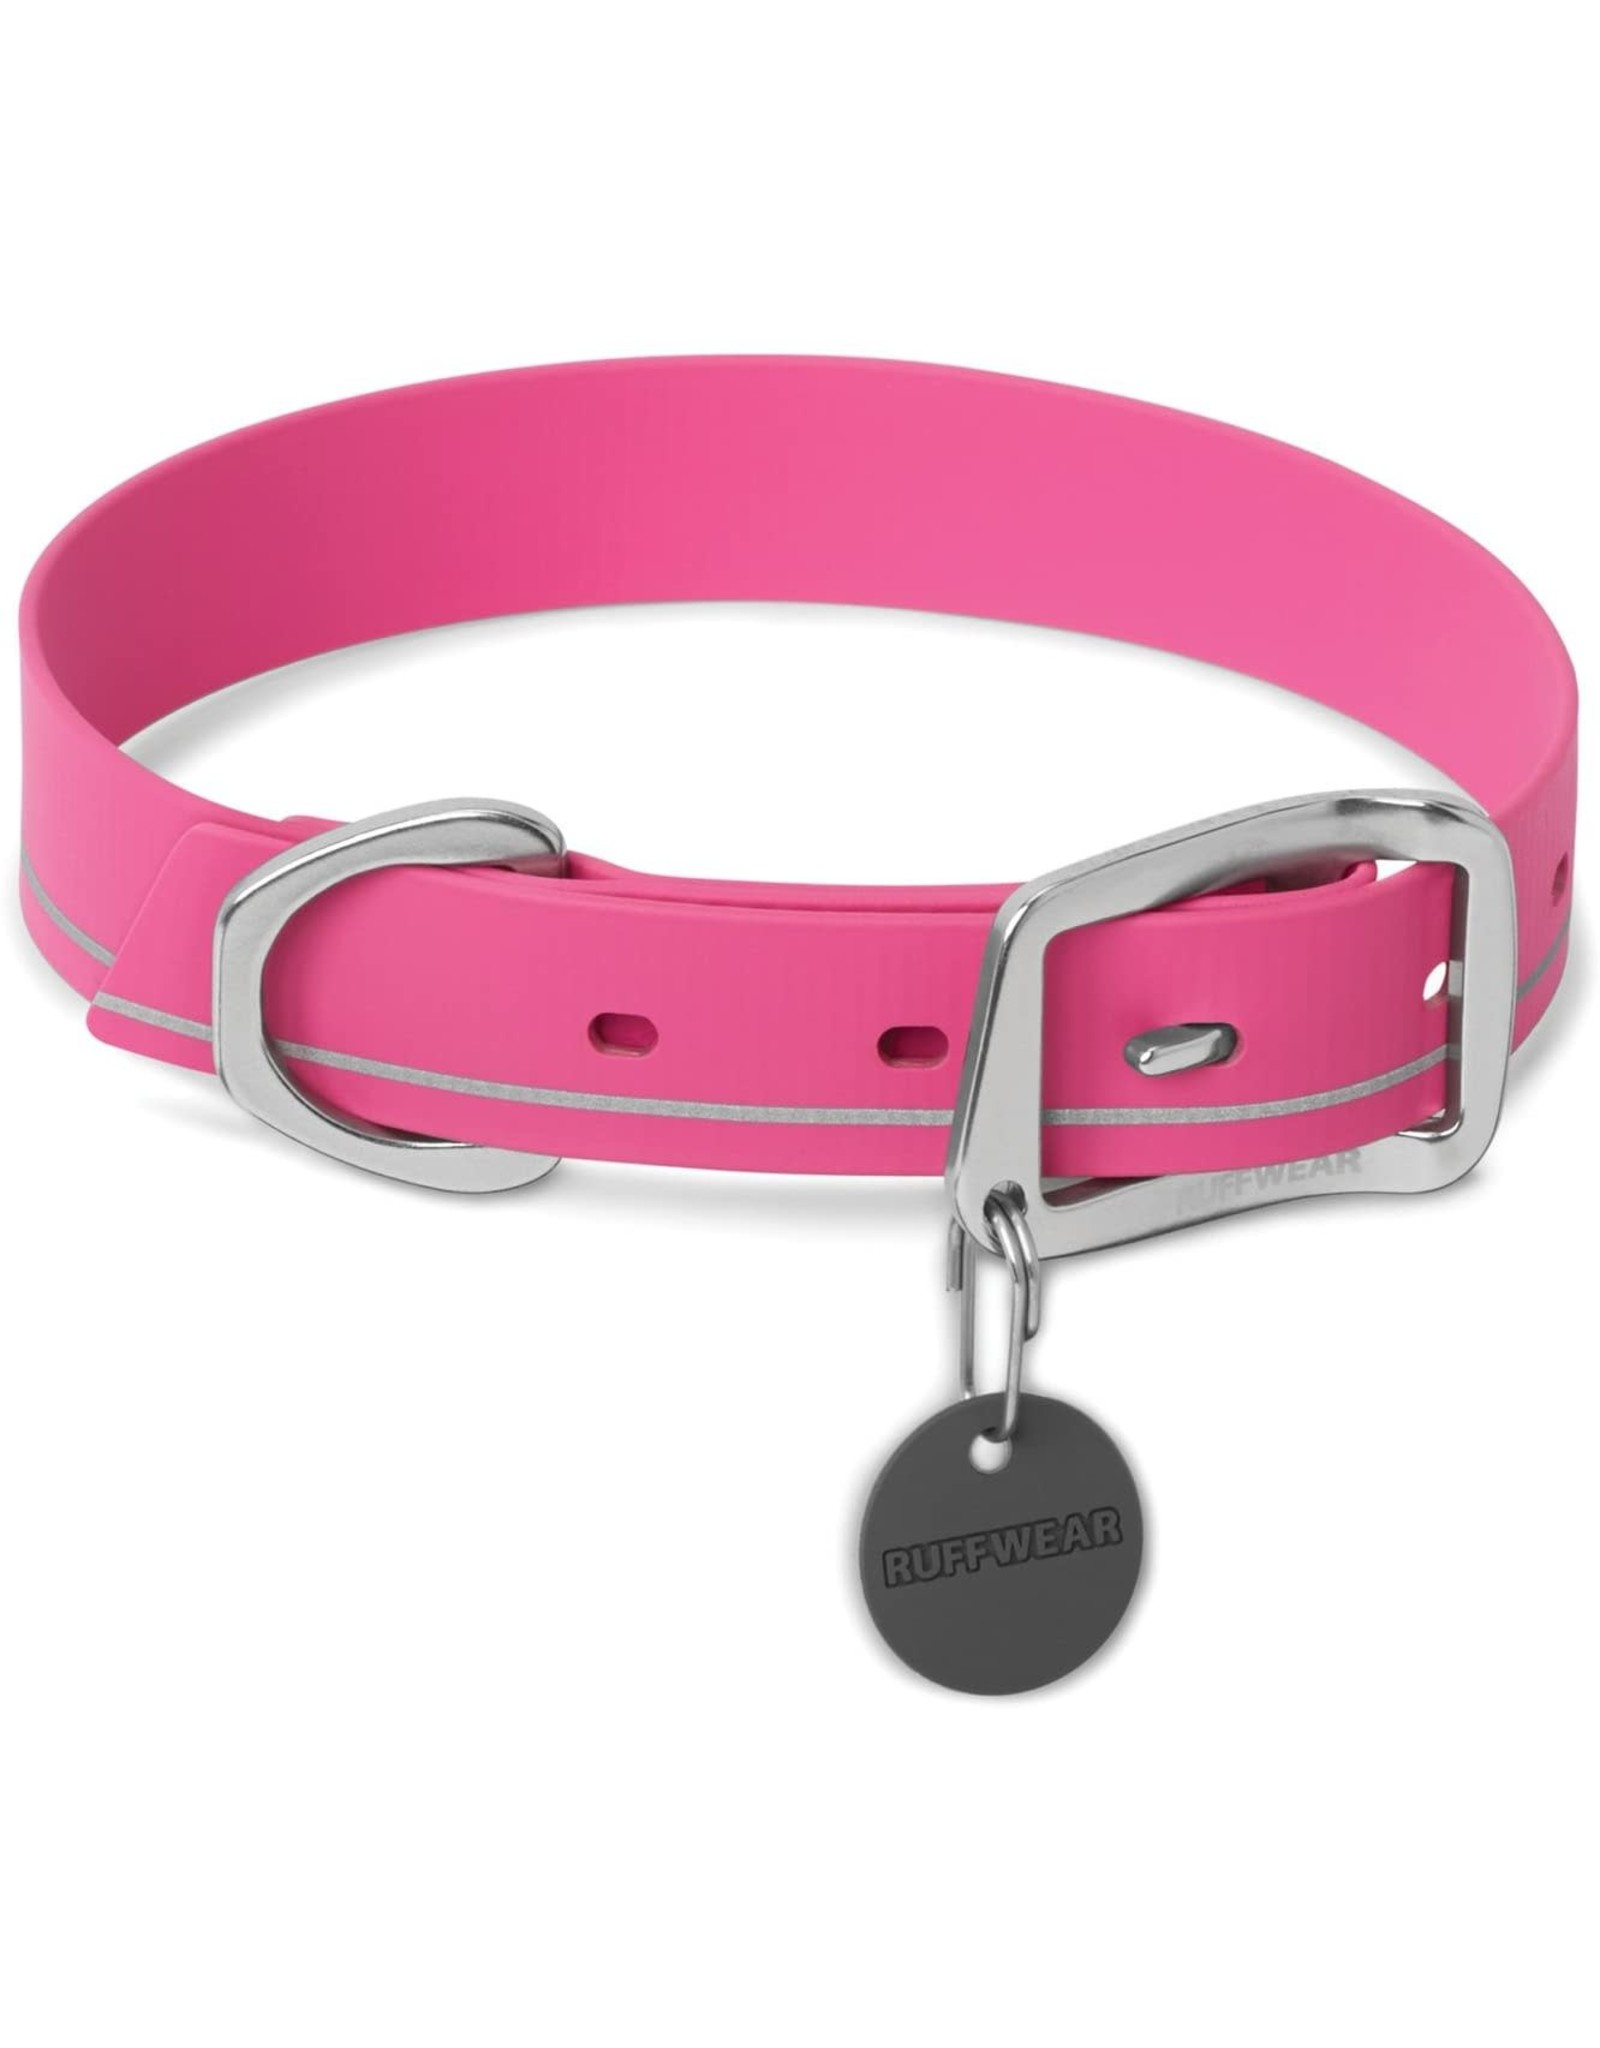 Headwater Collar: Alpenglow Pink, 14 - 17 inch